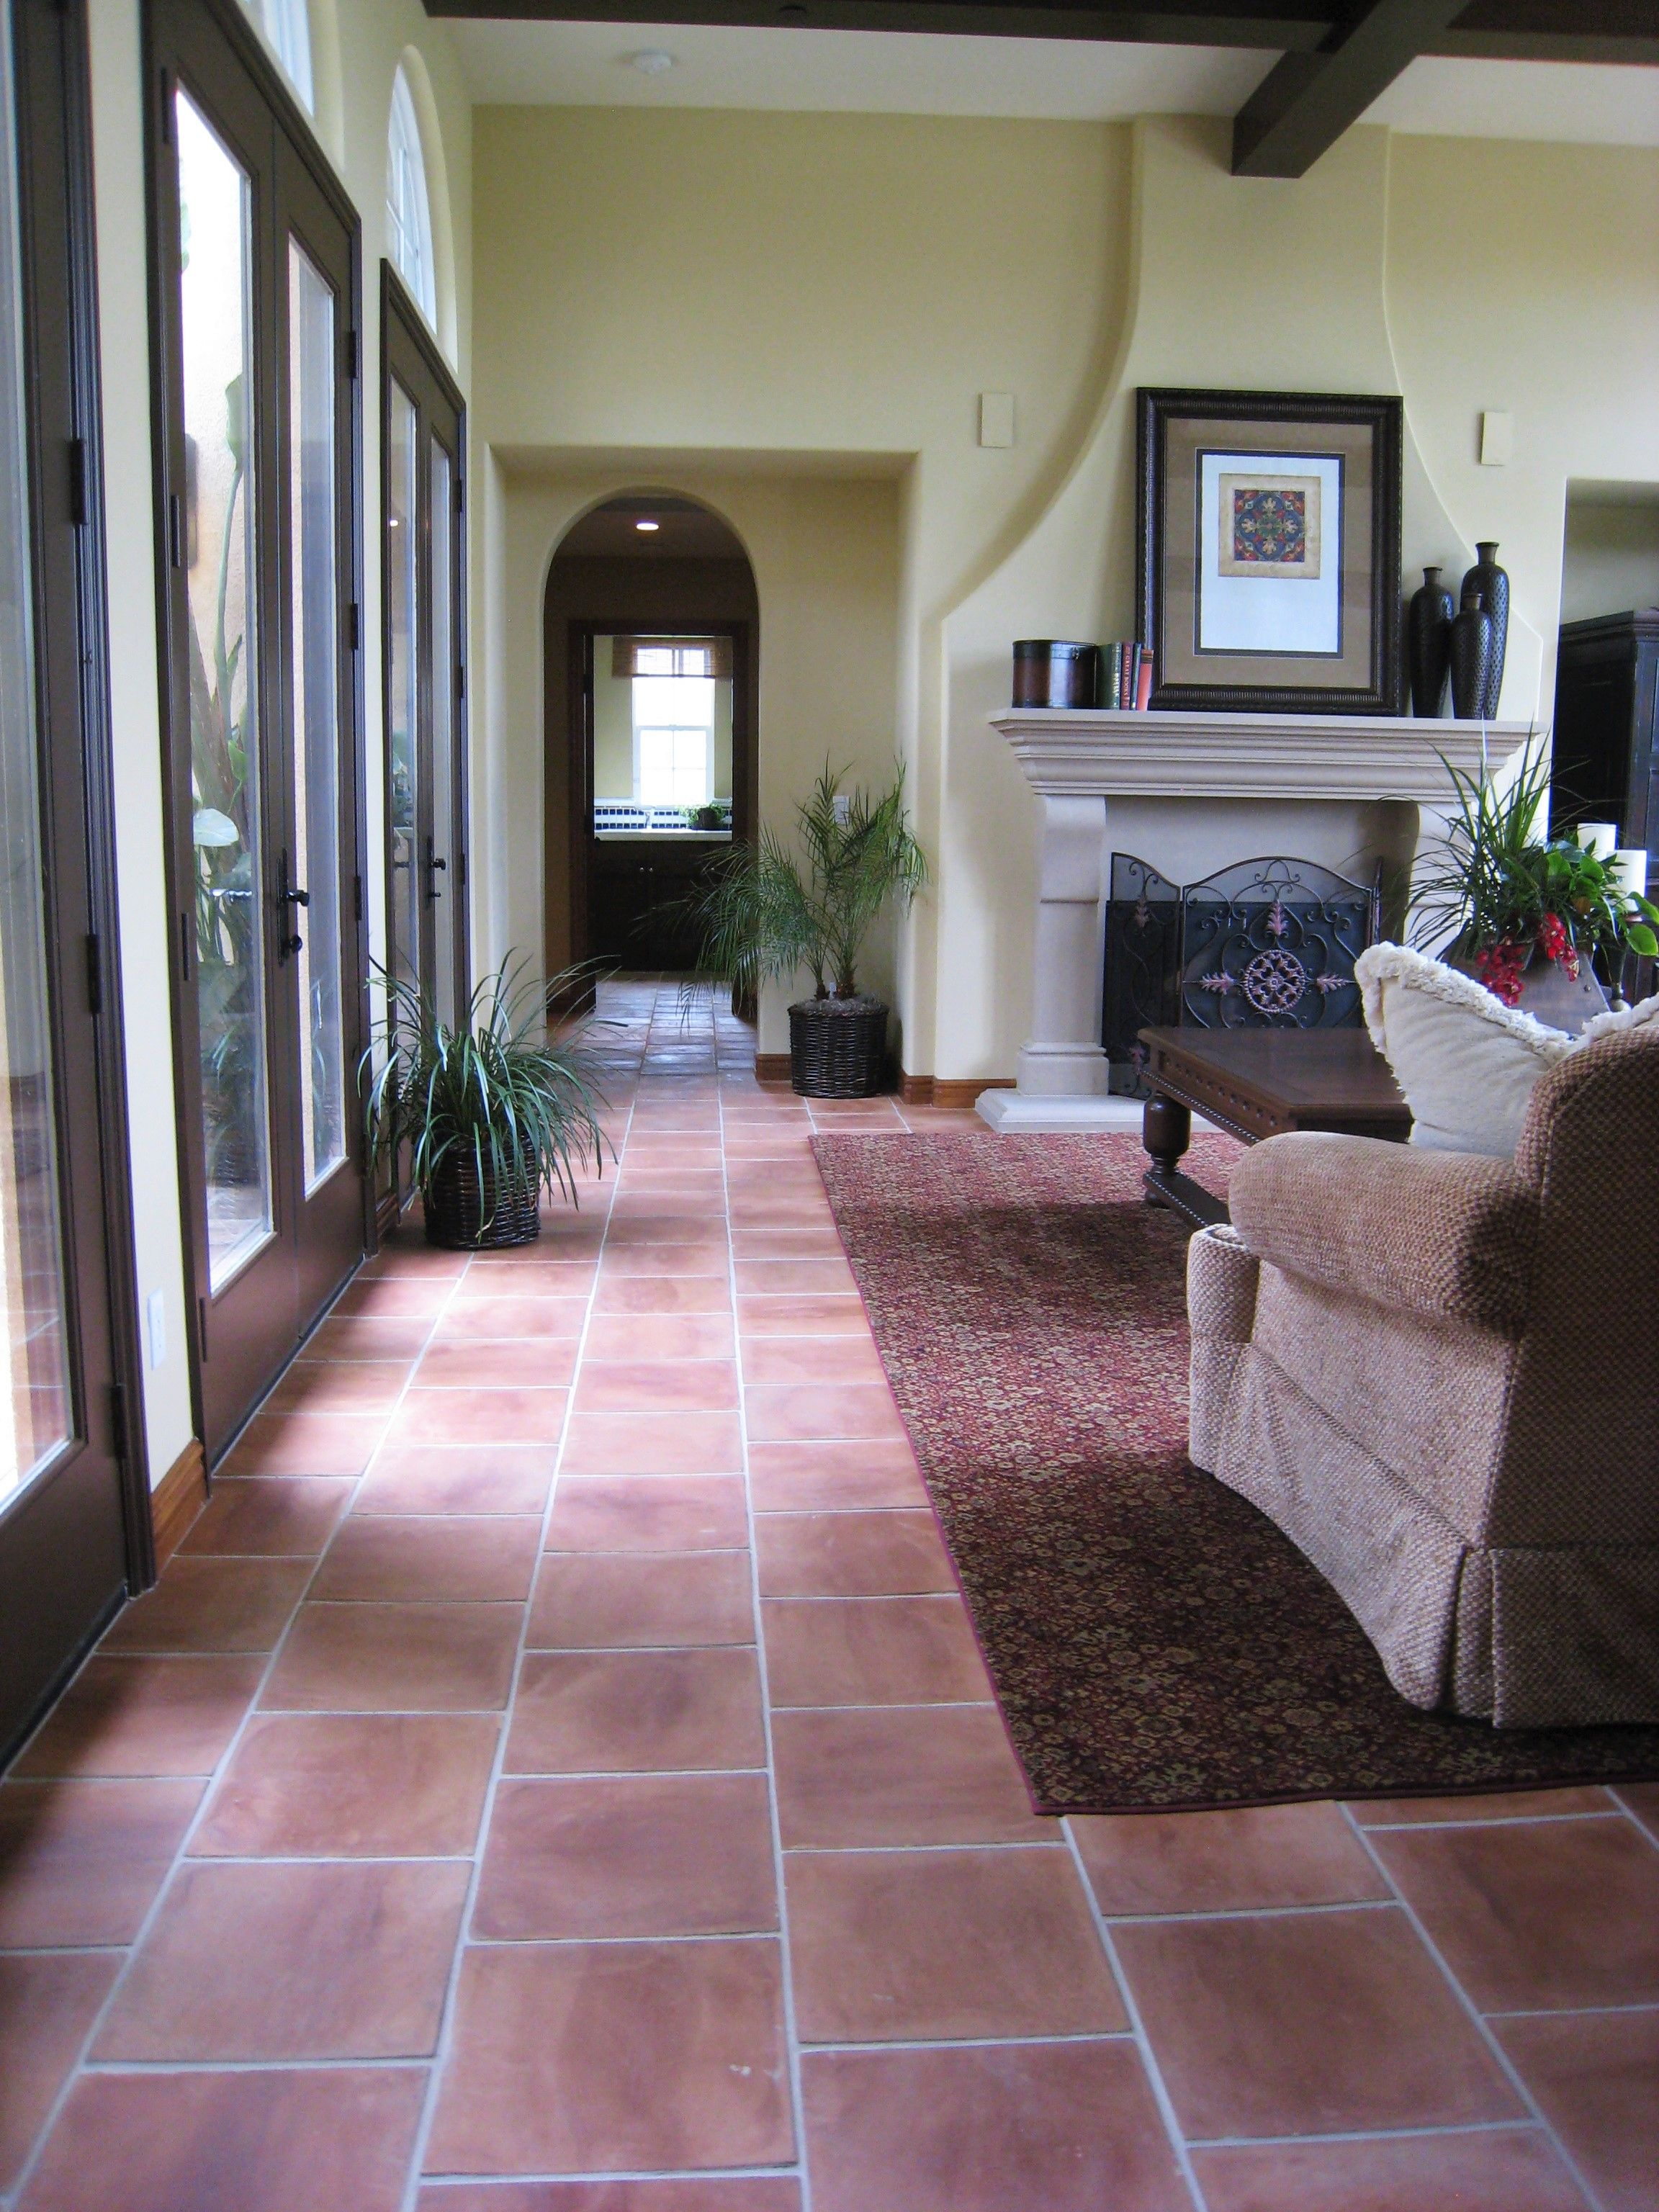 Pin by tierra y fuego tiles on terra cotta and ceramic floor tile ceramic floor tiles terra cotta floors terracotta glazed ceramic tile flooring slab ceramics dailygadgetfo Images